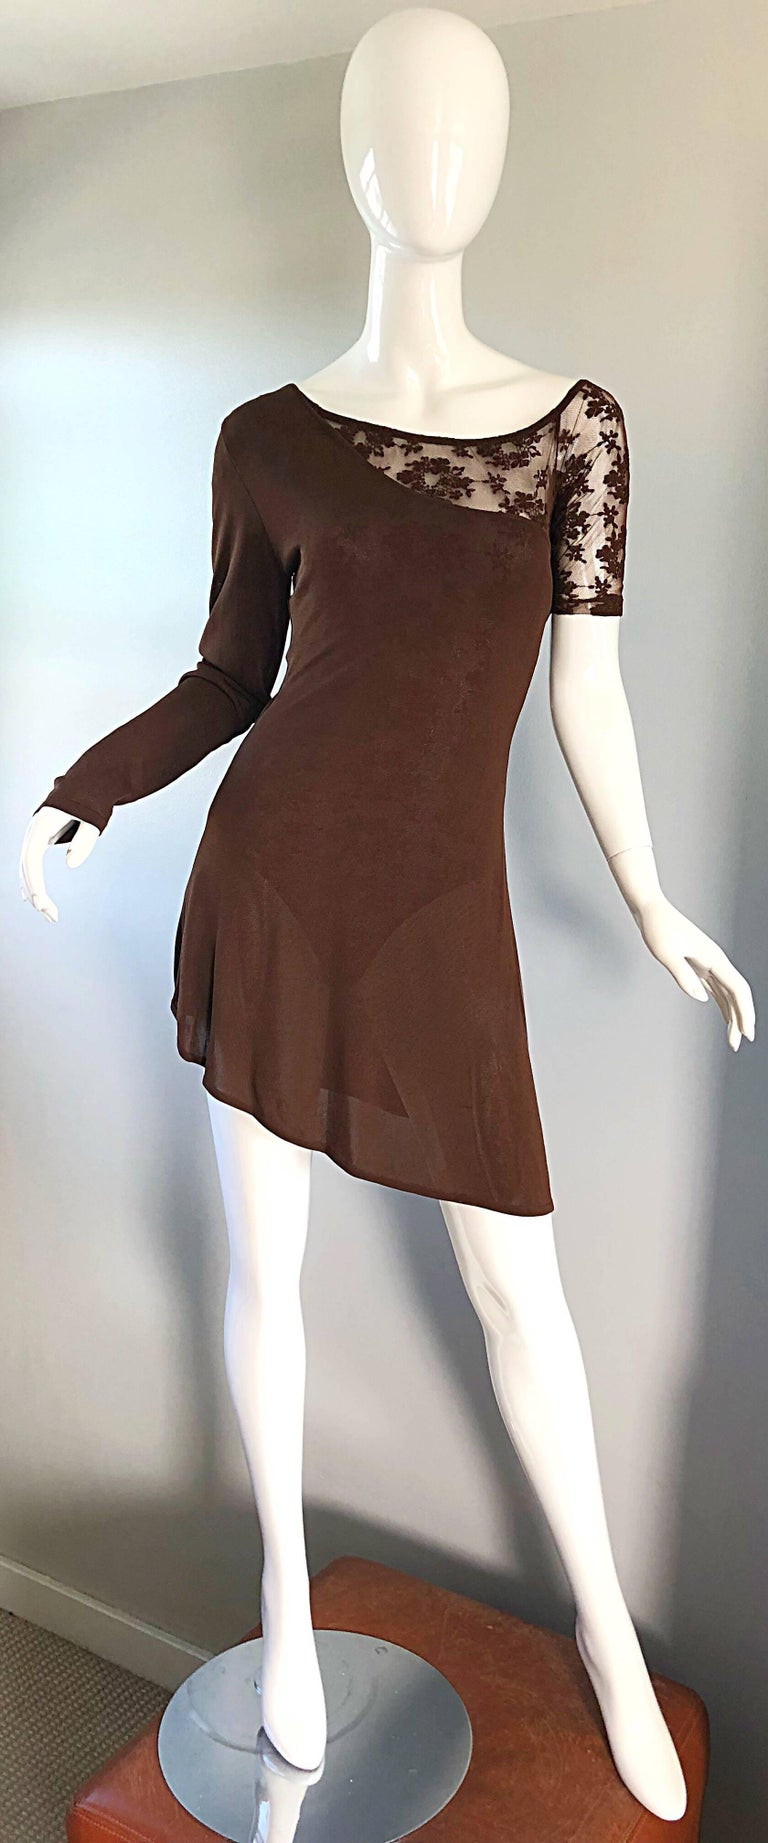 Rare Rifat Ozbek 1990s Choclate Brown French Lace 90s Vintage Bodysuit Top  For Sale 3